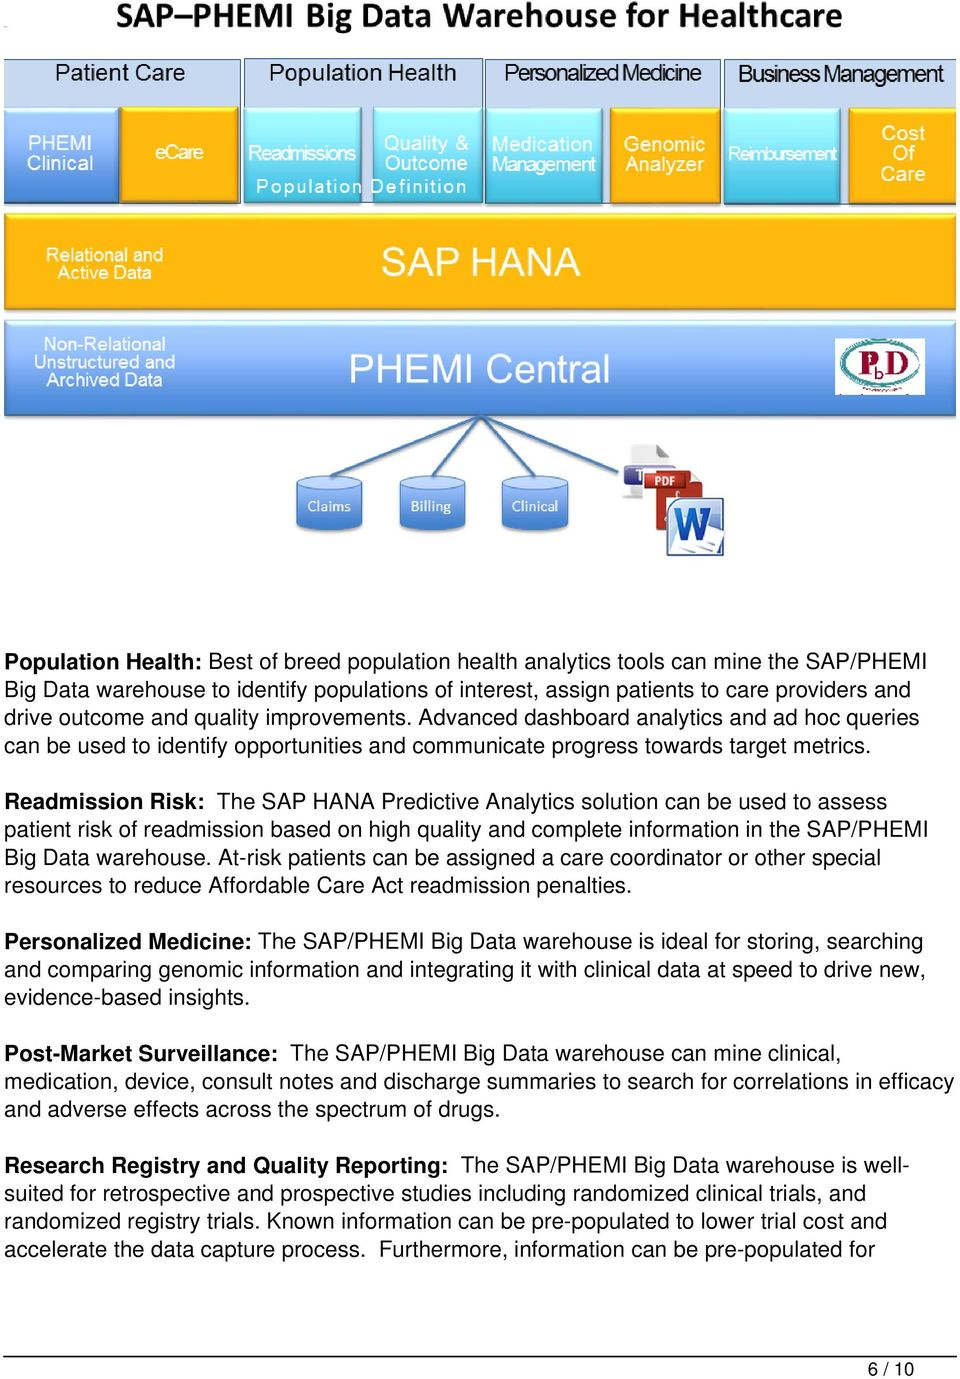 Readmission Risk: The SAP HANA Predictive Analytics solution can be used to assess patient risk of readmission based on high quality and complete information in the SAP/PHEMI Big Data warehouse.